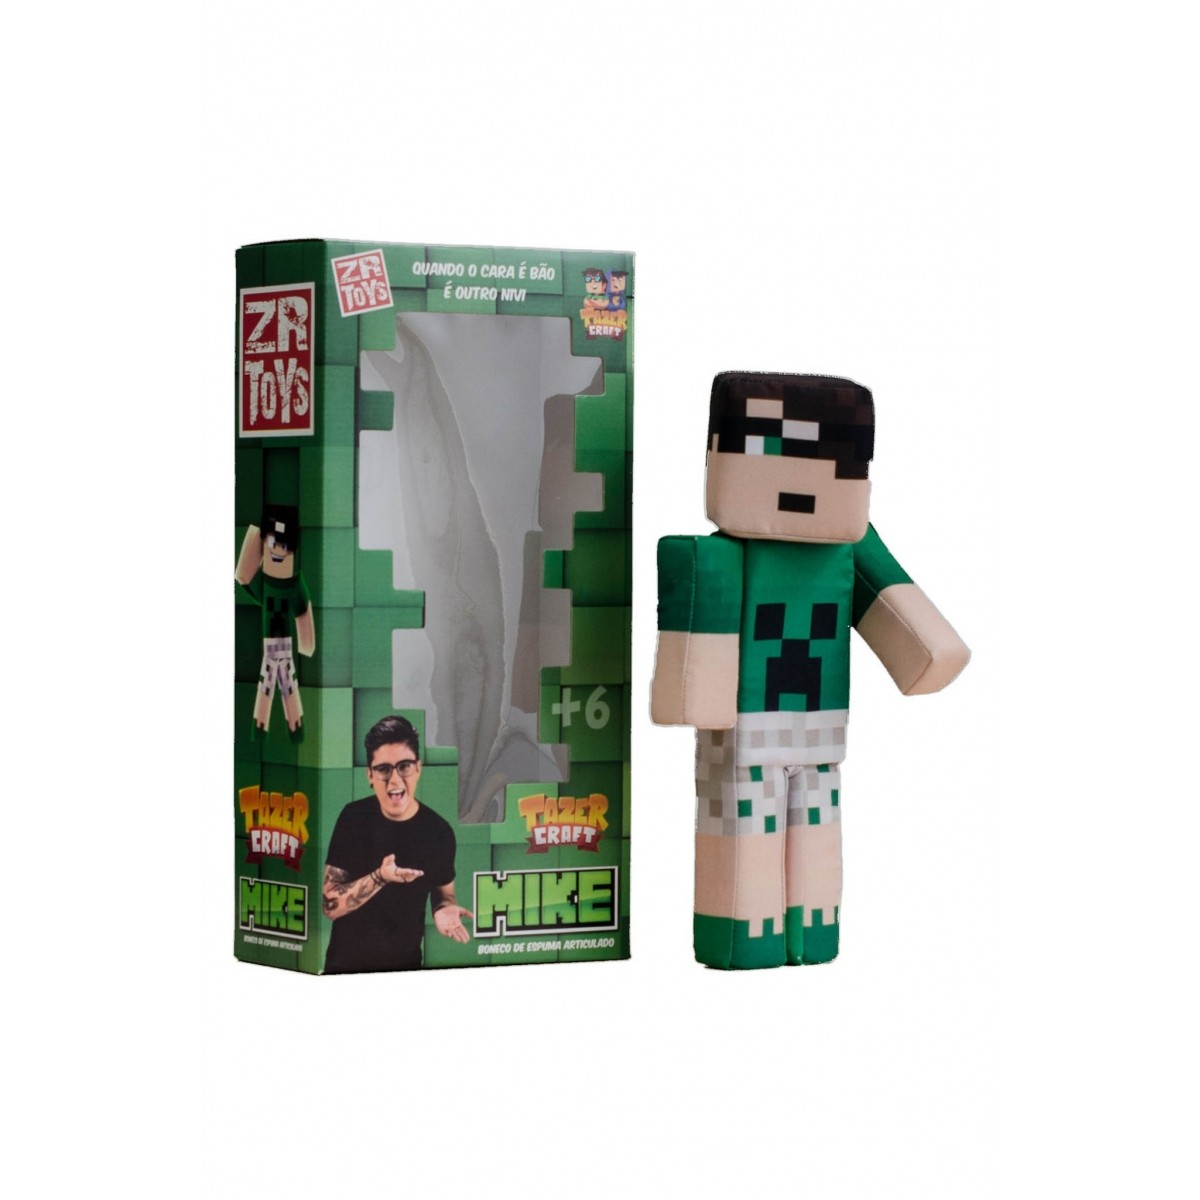 Boneco Tazer Craft Mike ZR Toys C3038  - Place Games